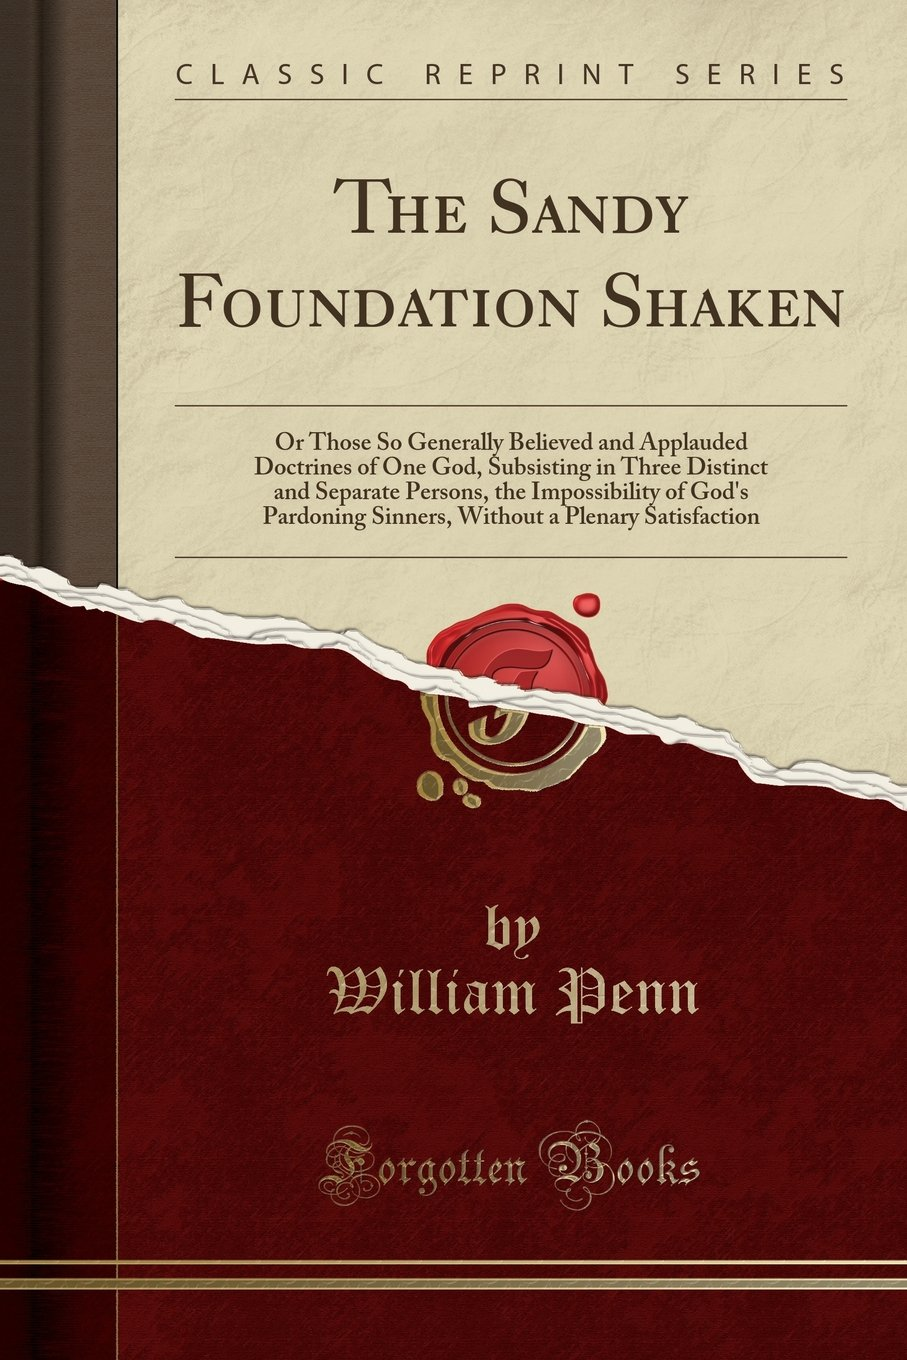 Download The Sandy Foundation Shaken: Or Those So Generally Believed and Applauded Doctrines of One God, Subsisting in Three Distinct and Separate Persons, the ... a Plenary Satisfaction (Classic Reprint) ebook